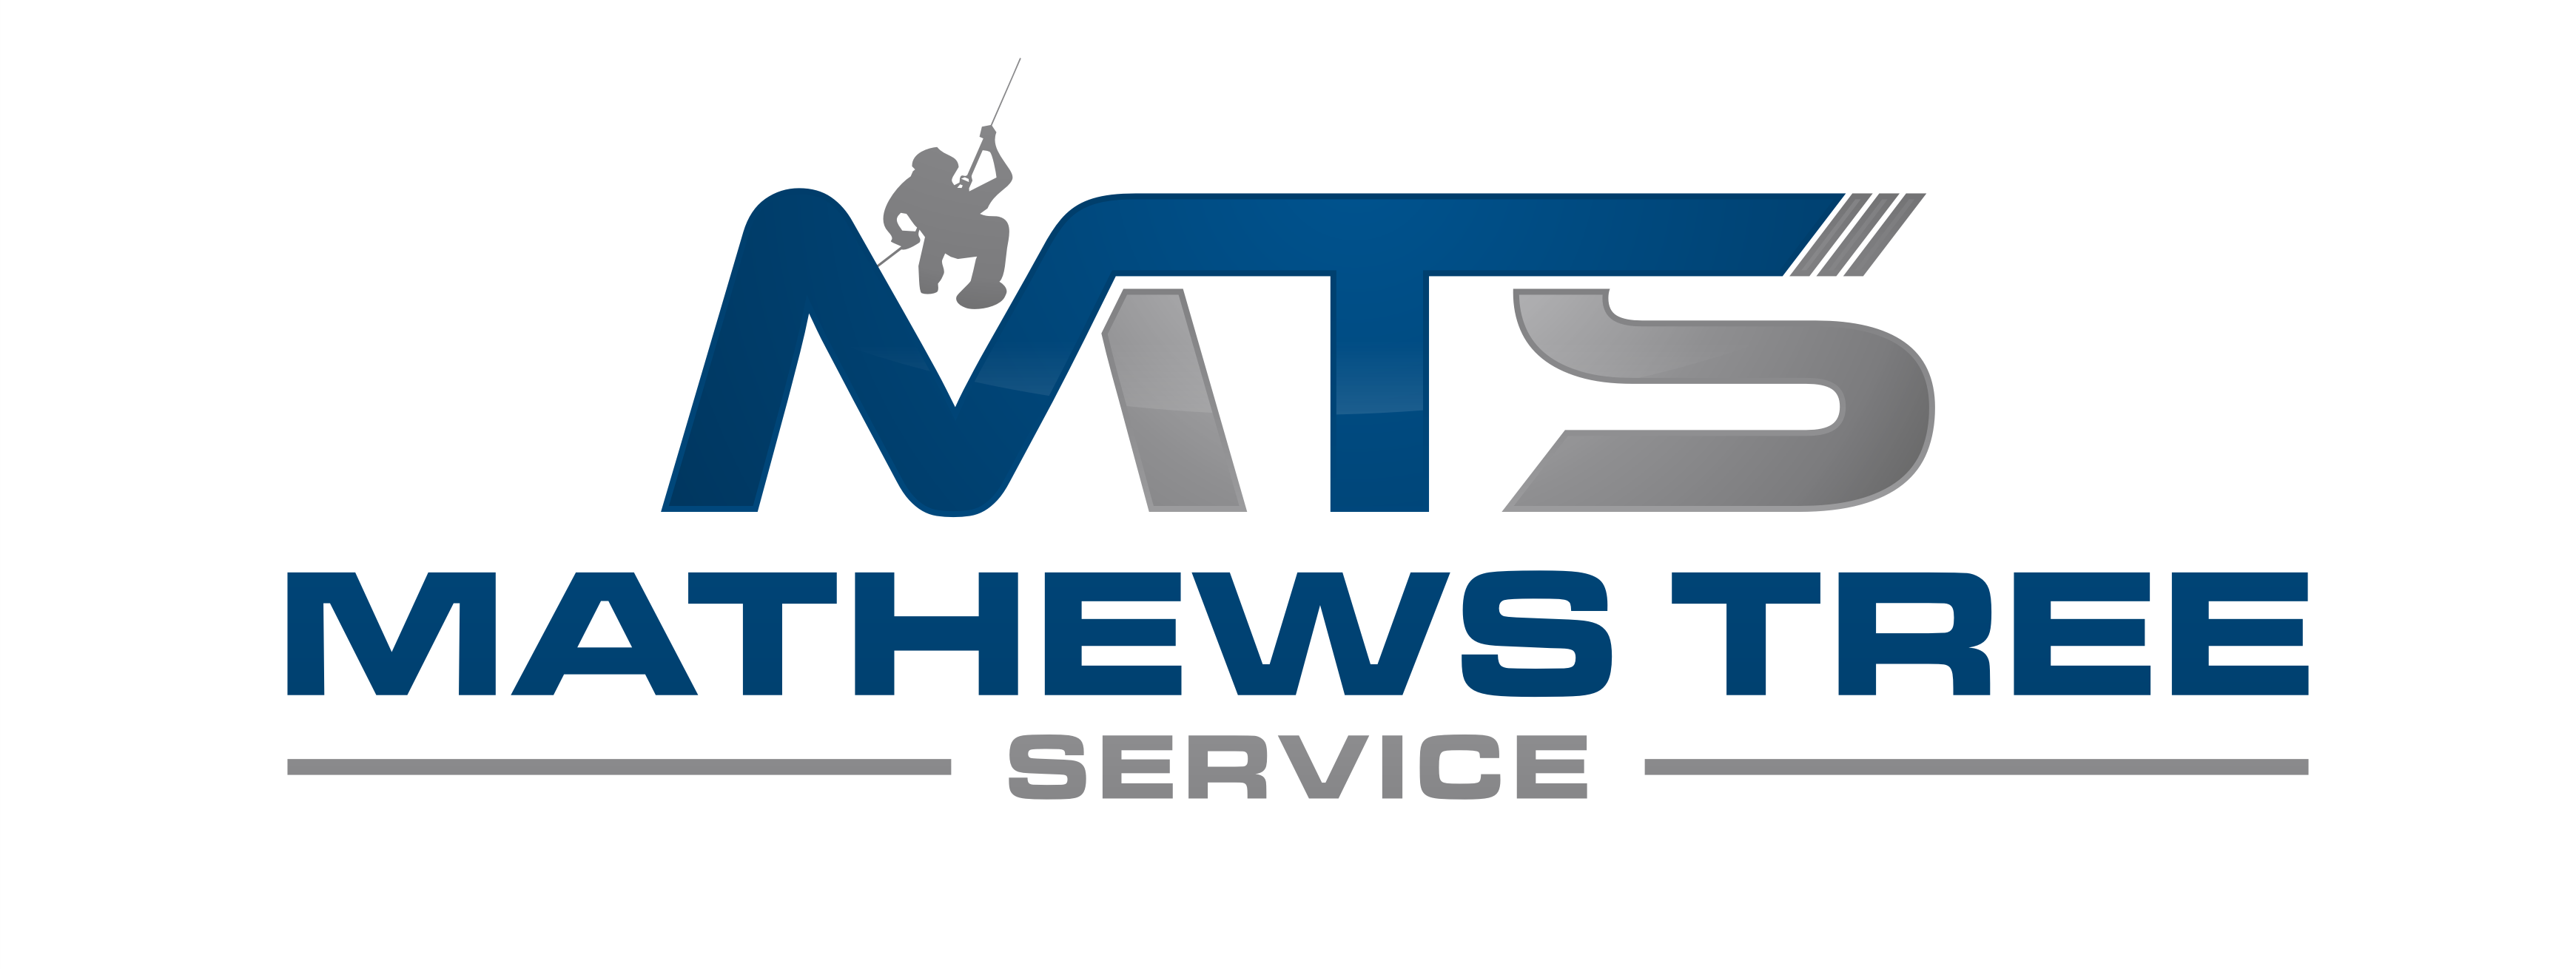 Mathews Tree Service